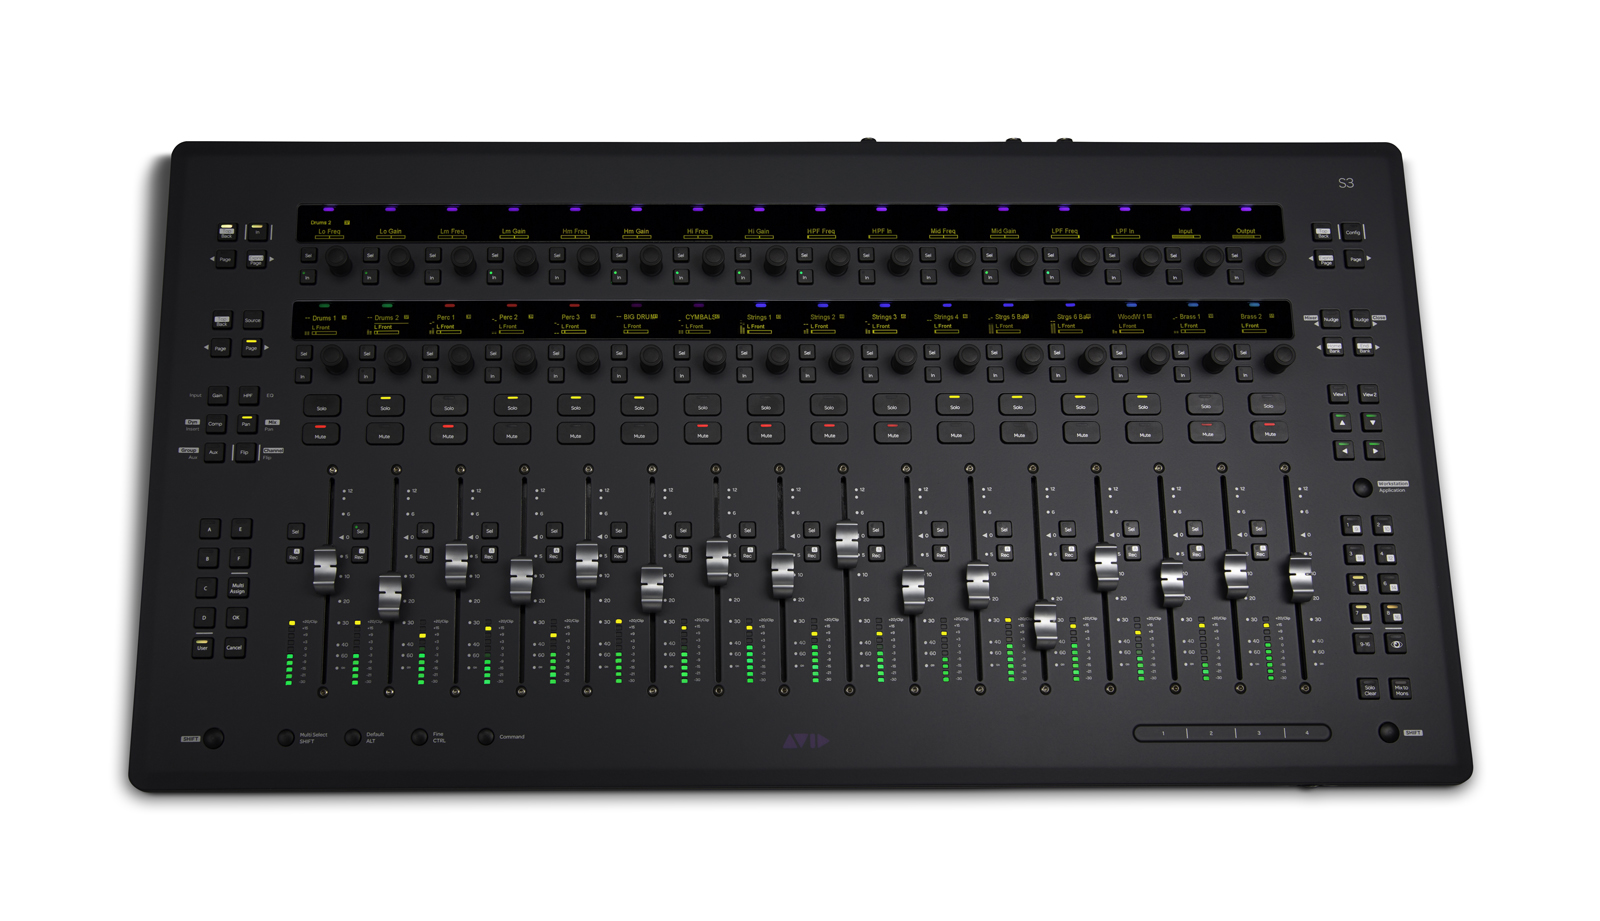 Avid Pro Tools S3 Control Surface by